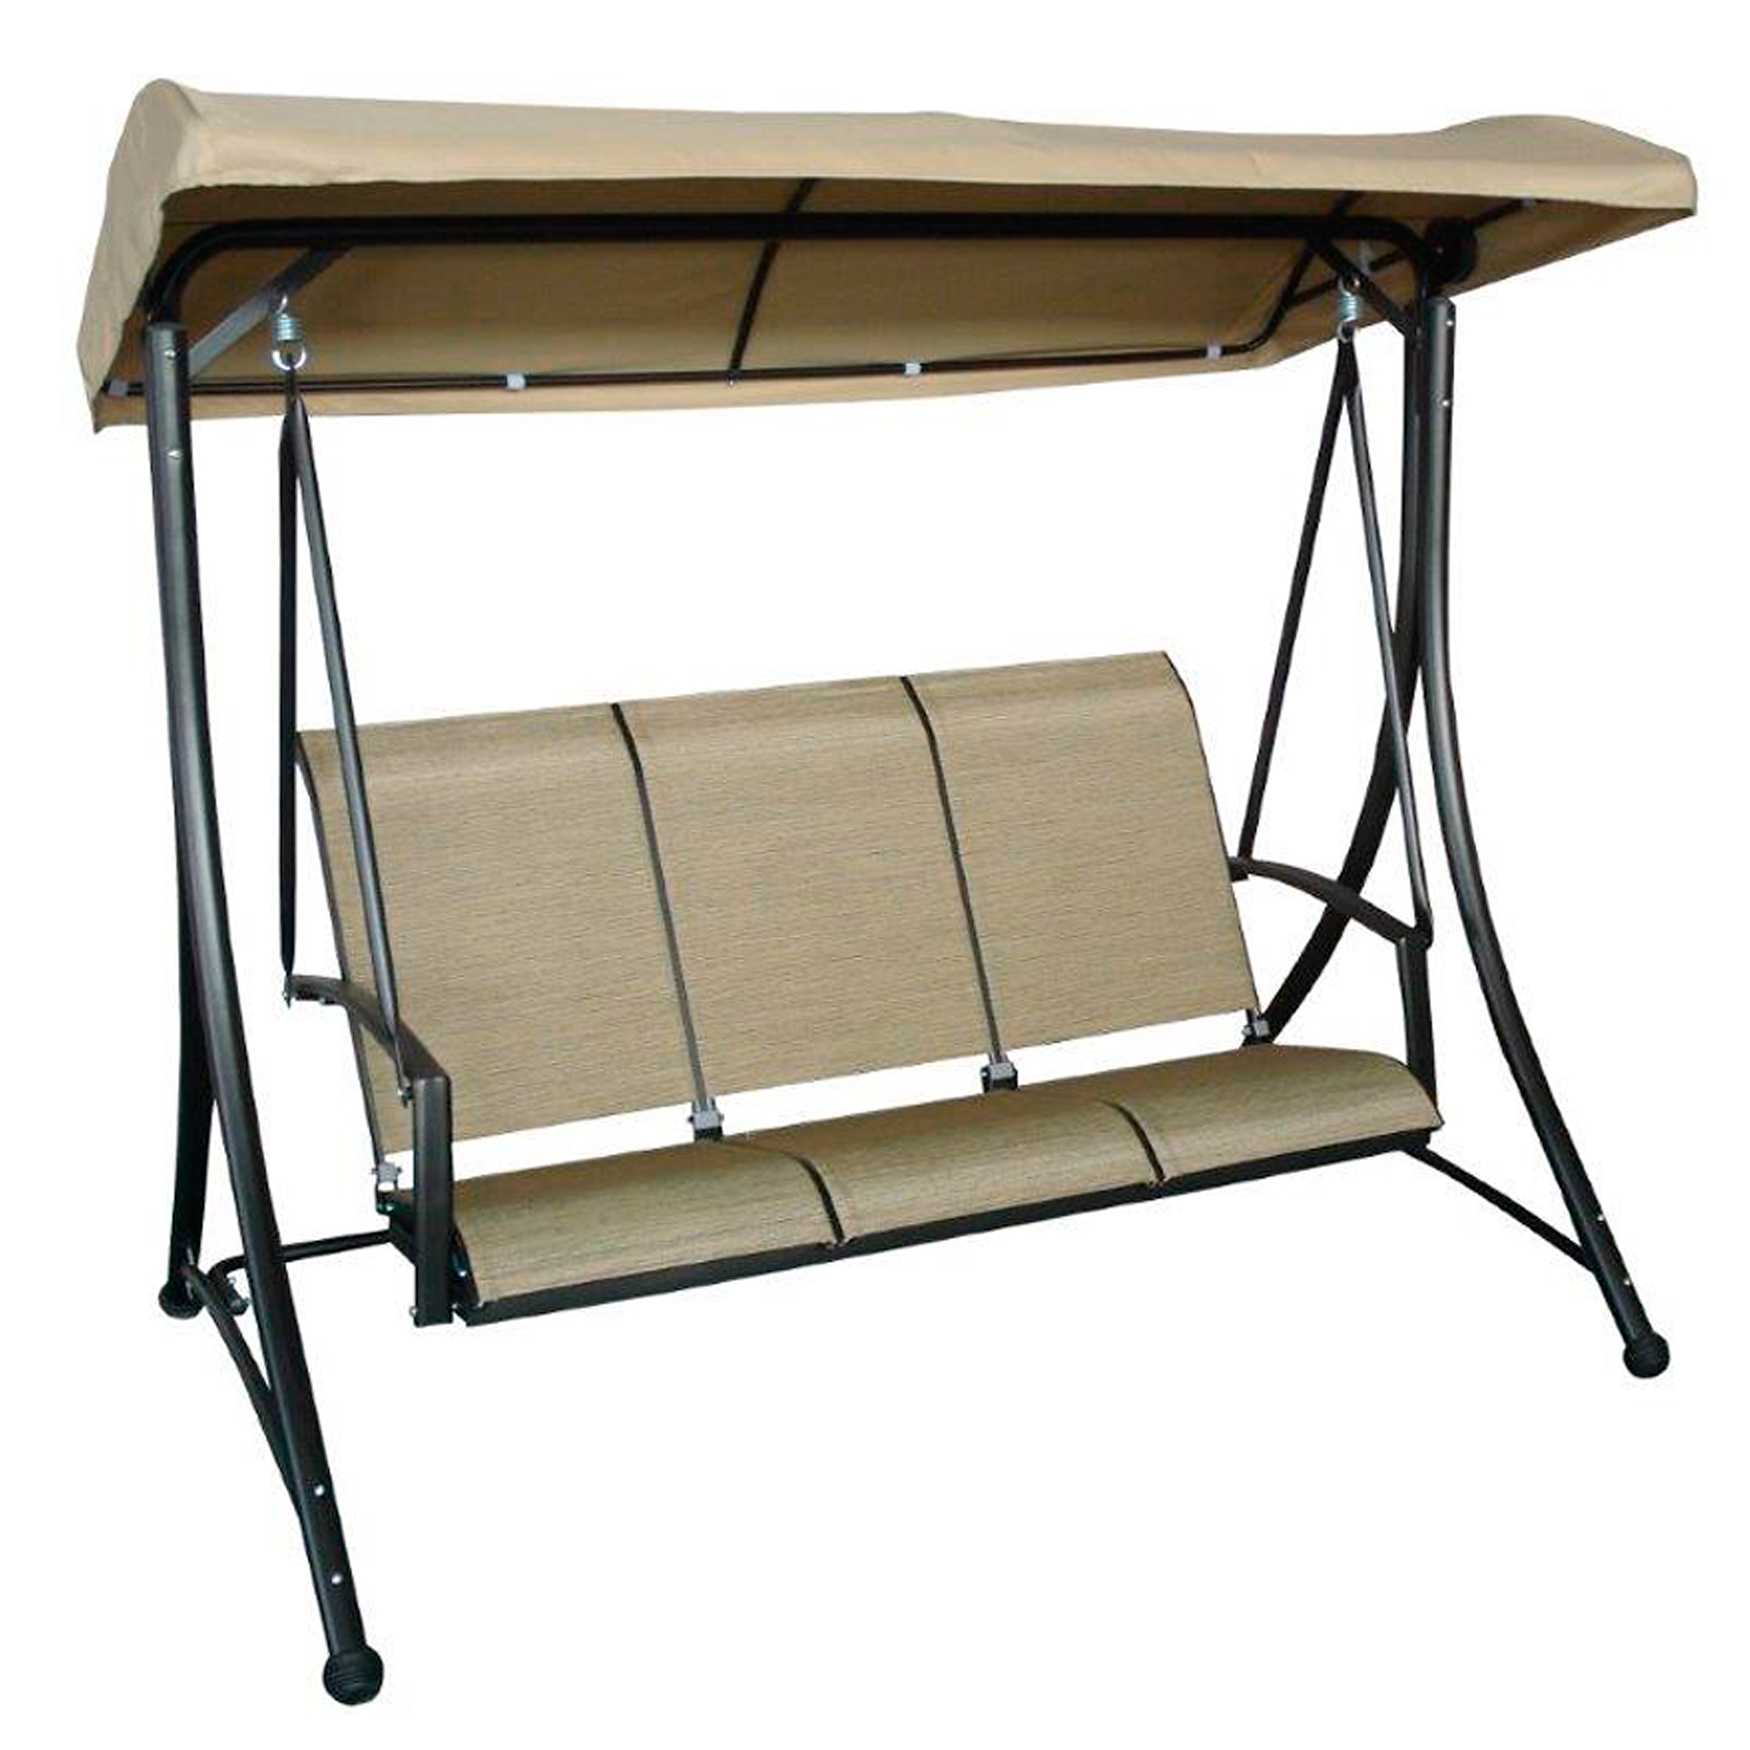 3 Seat Swing with Canopy, TAUPE